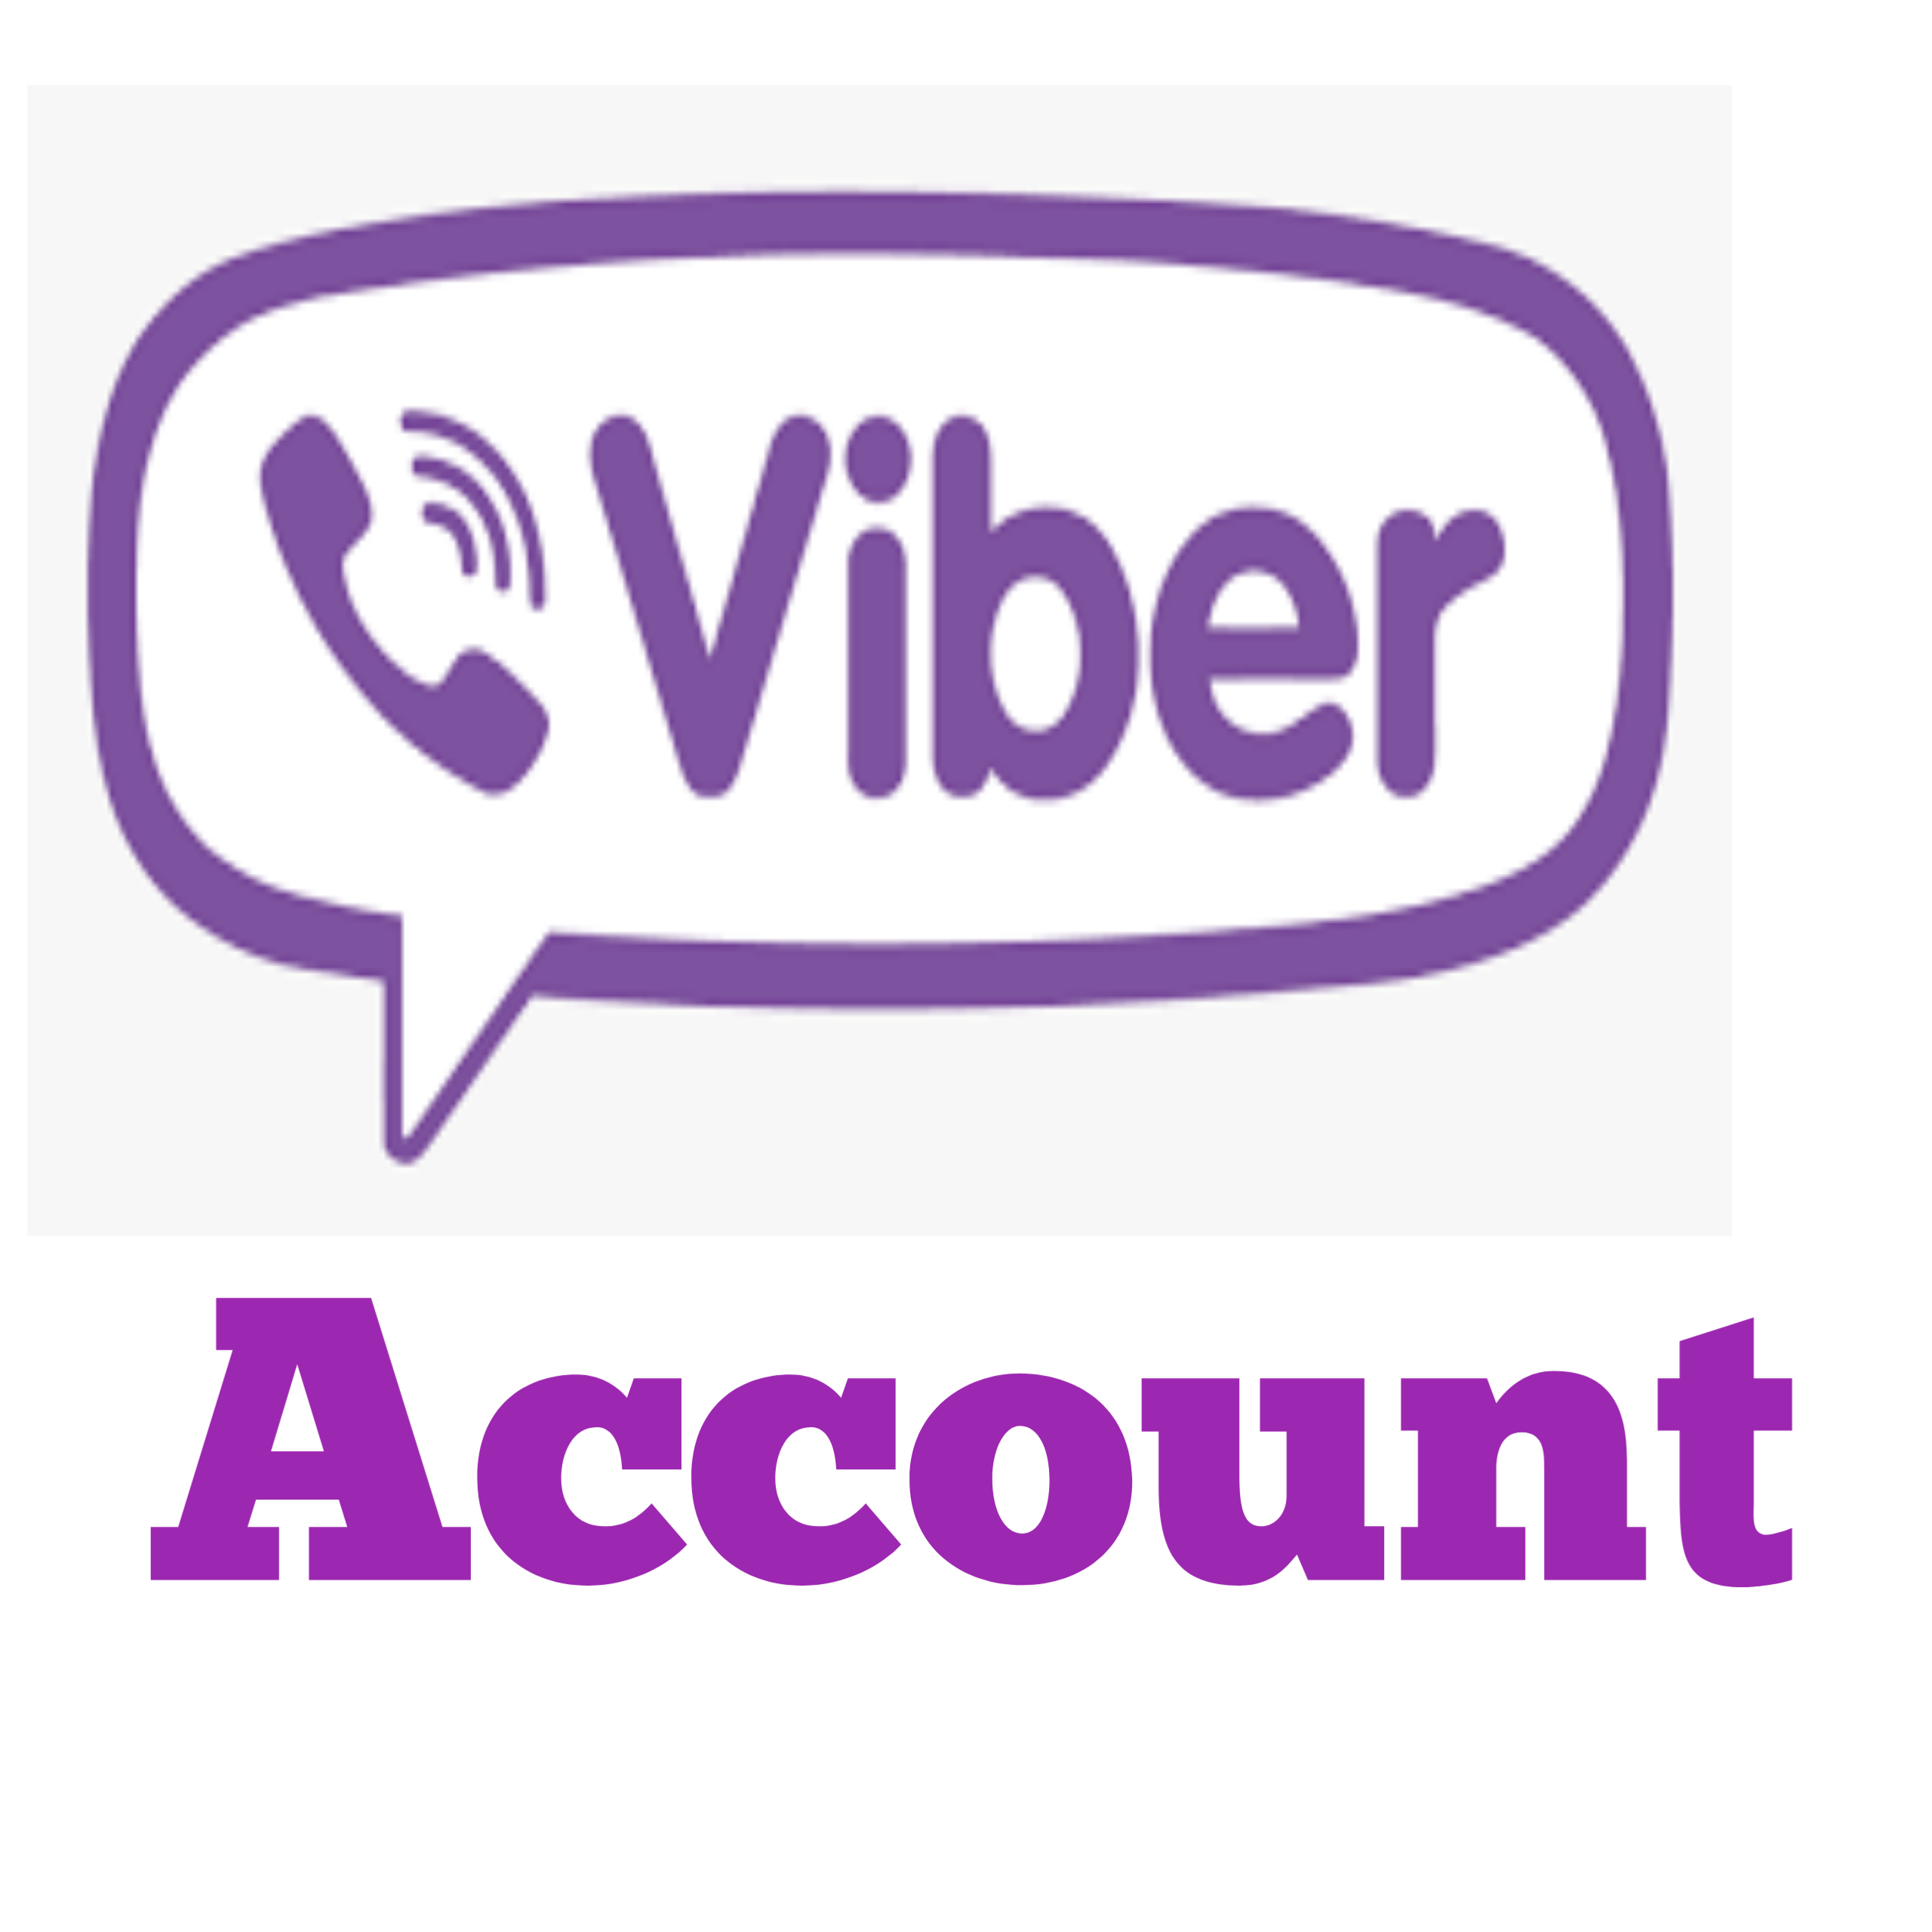 Most People use the Viber Account 2021